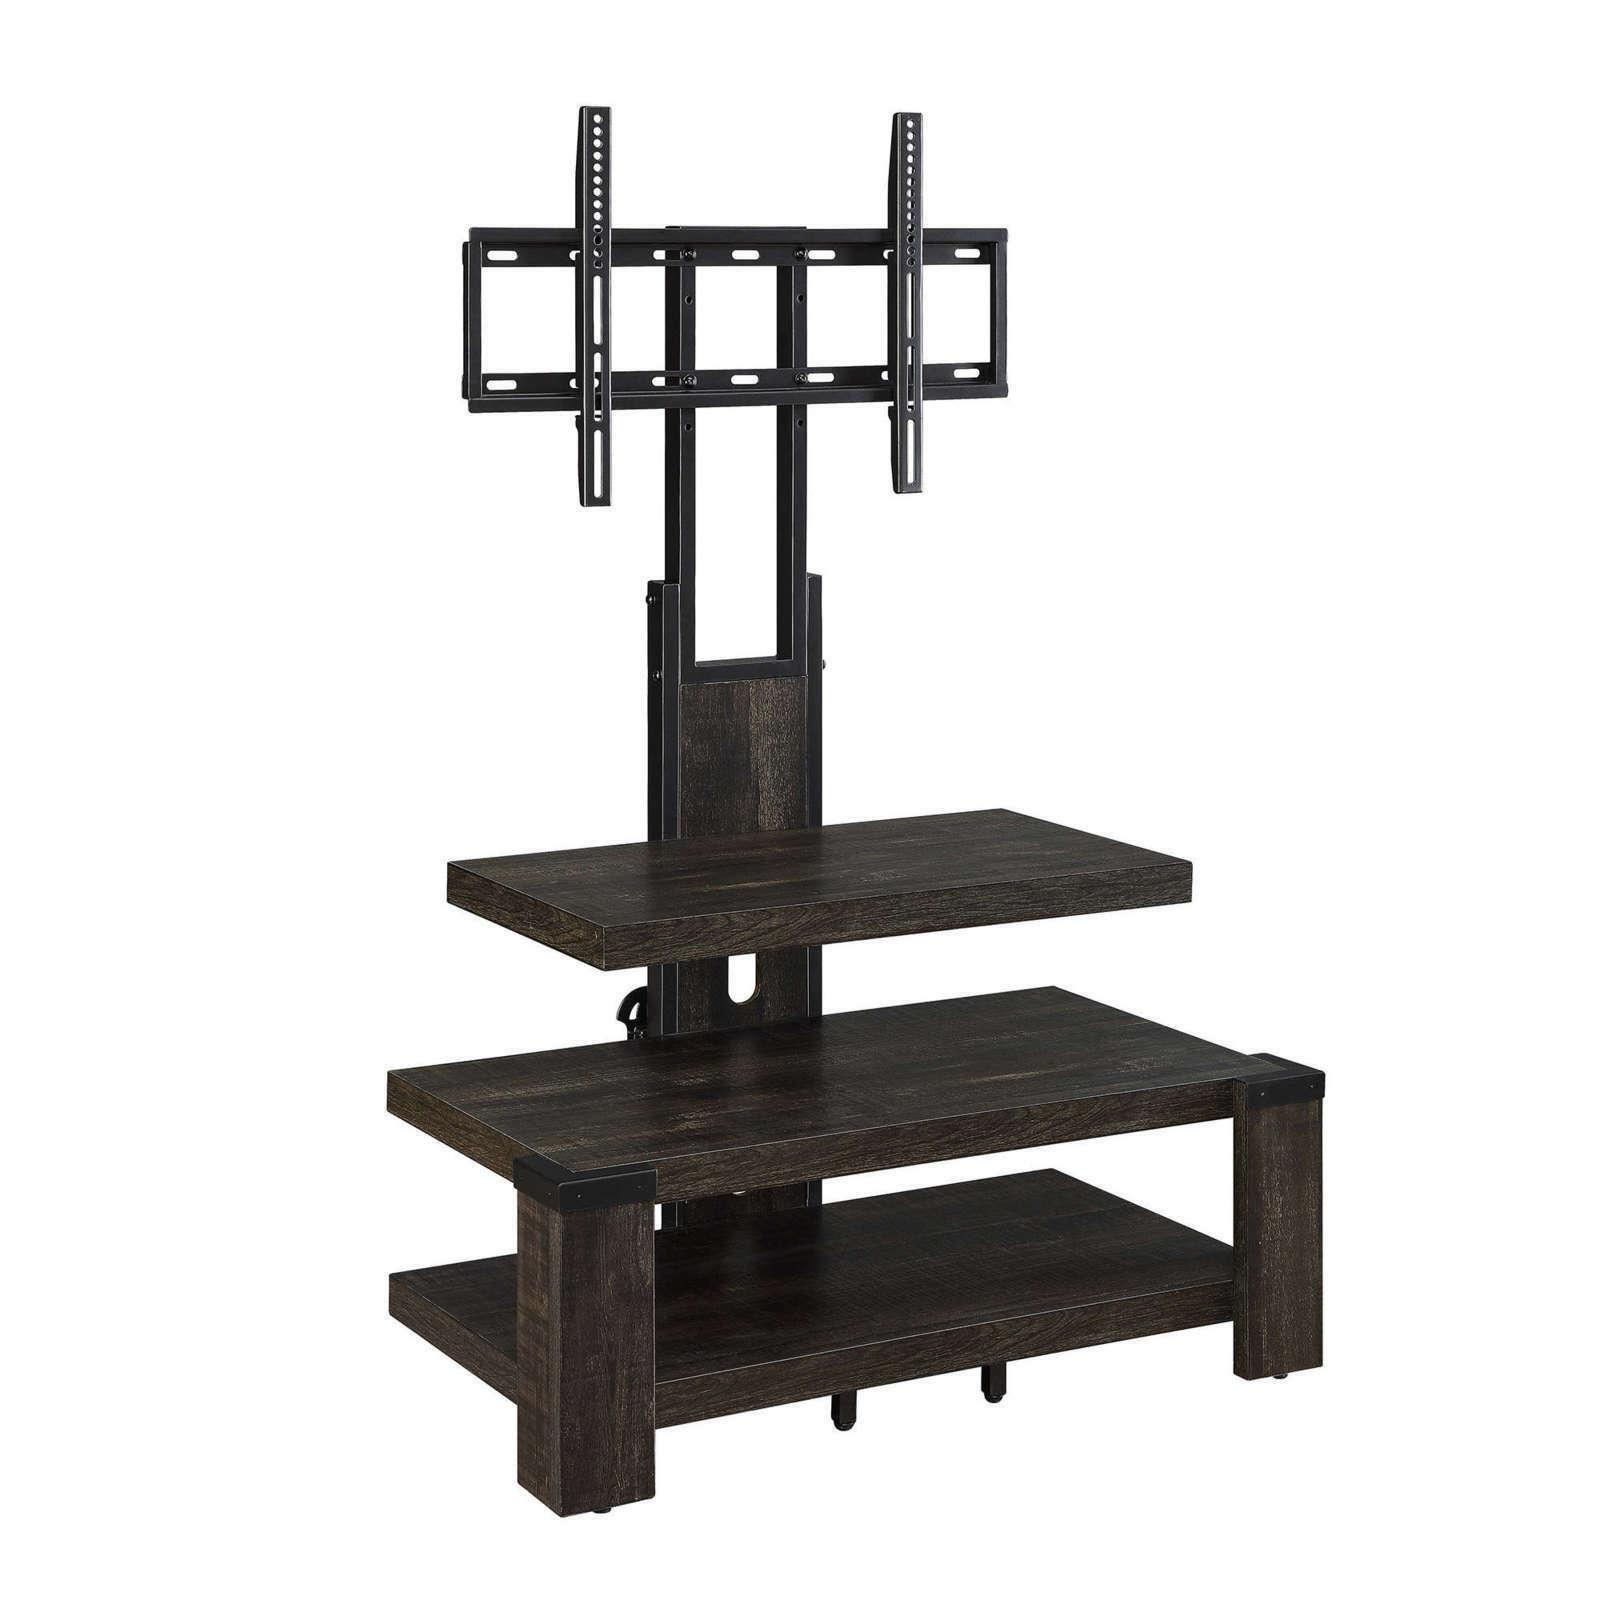 """Tv Stand 65 Inch Flat Screen Entertainment Medi Throughout Whalen Furniture Black Tv Stands For 65"""" Flat Panel Tvs With Tempered Glass Shelves (View 5 of 20)"""